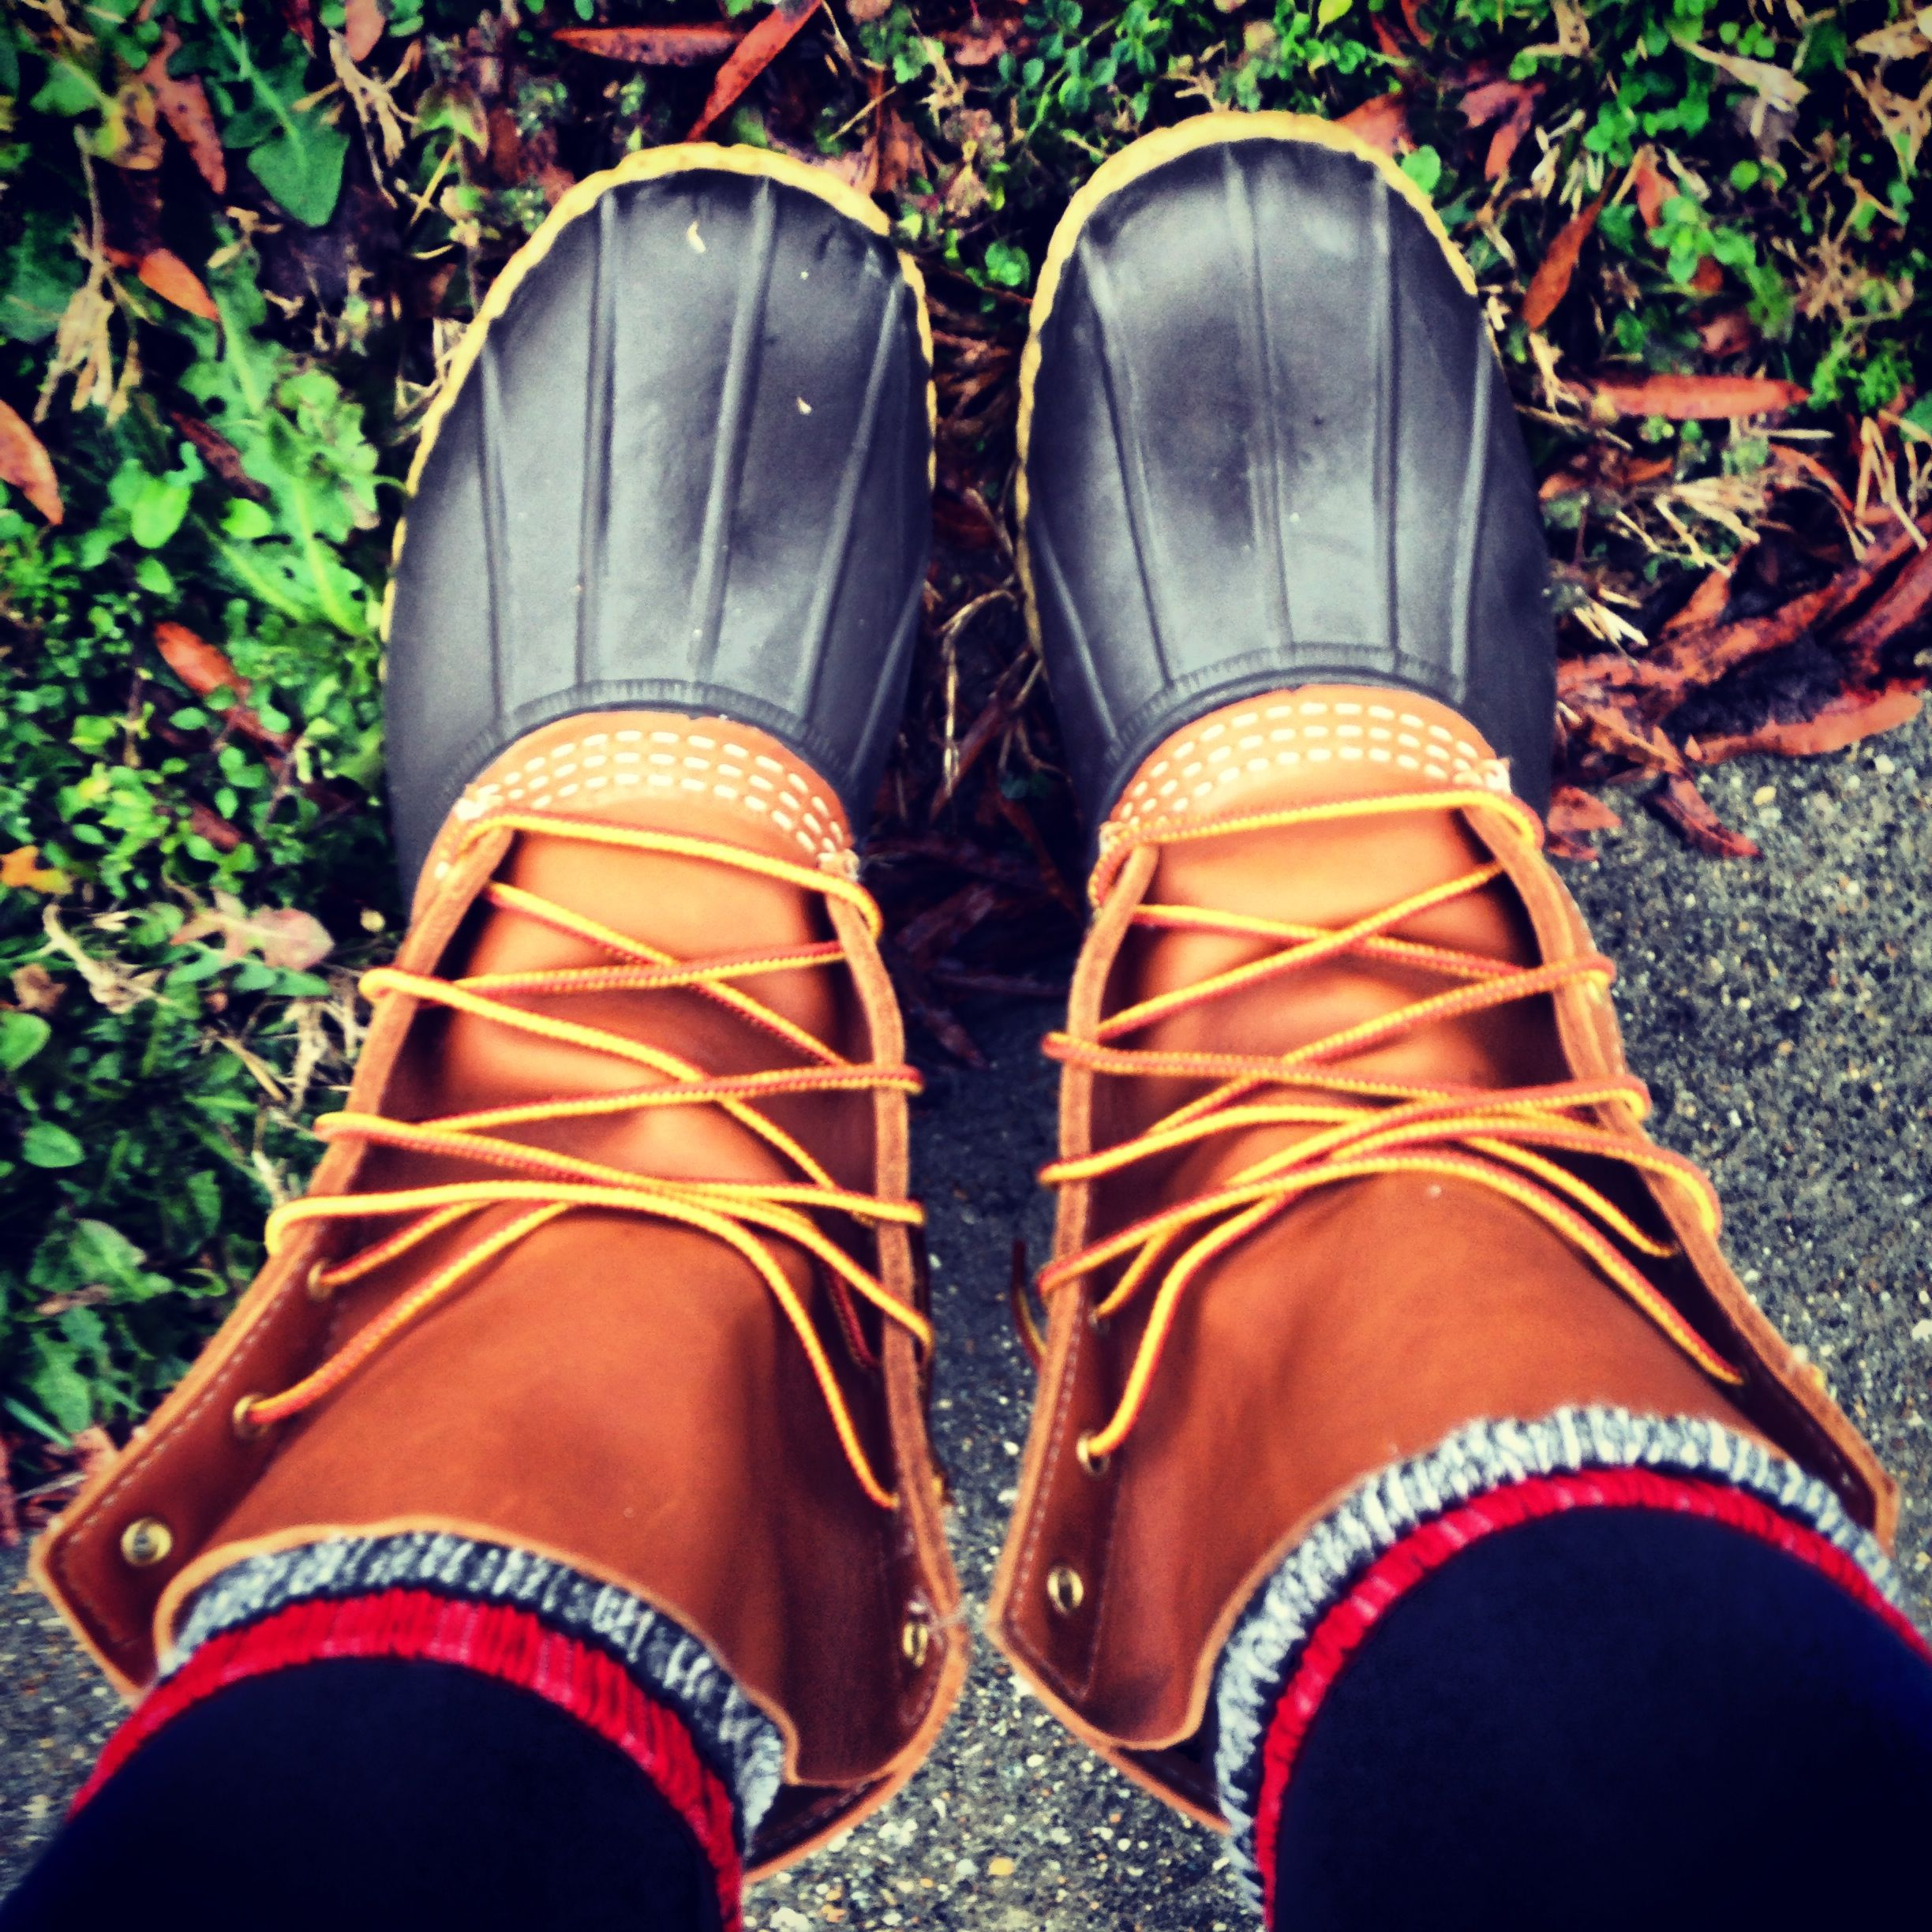 Bean boots, warm comfy feet and cute... Can't wait till mine come in the mail!!